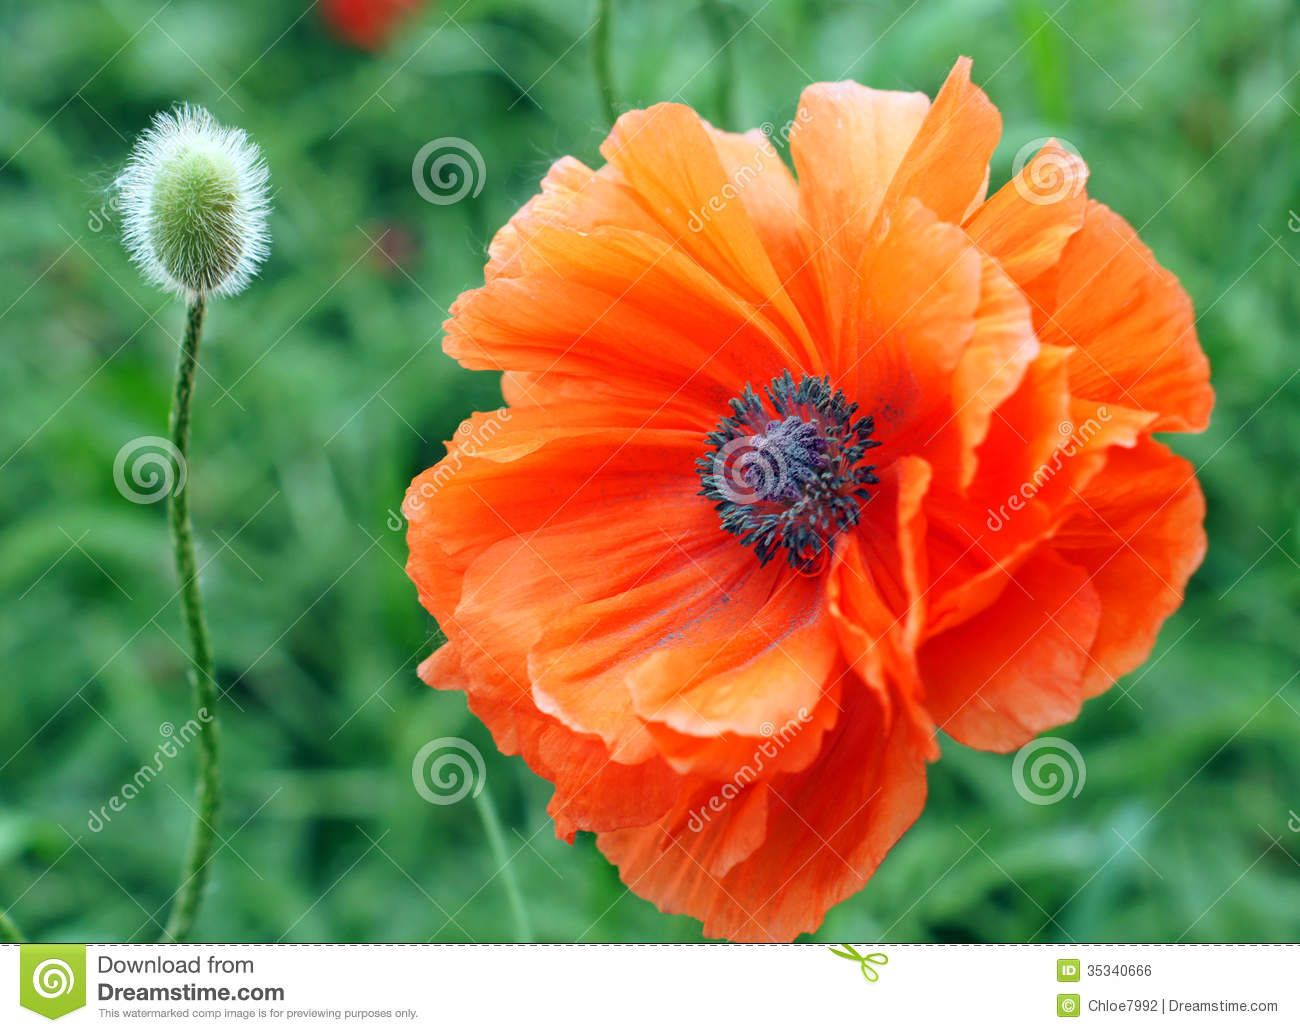 Poppy orange google search tattoo final inspiration pics for poppy orange google search dhlflorist Images